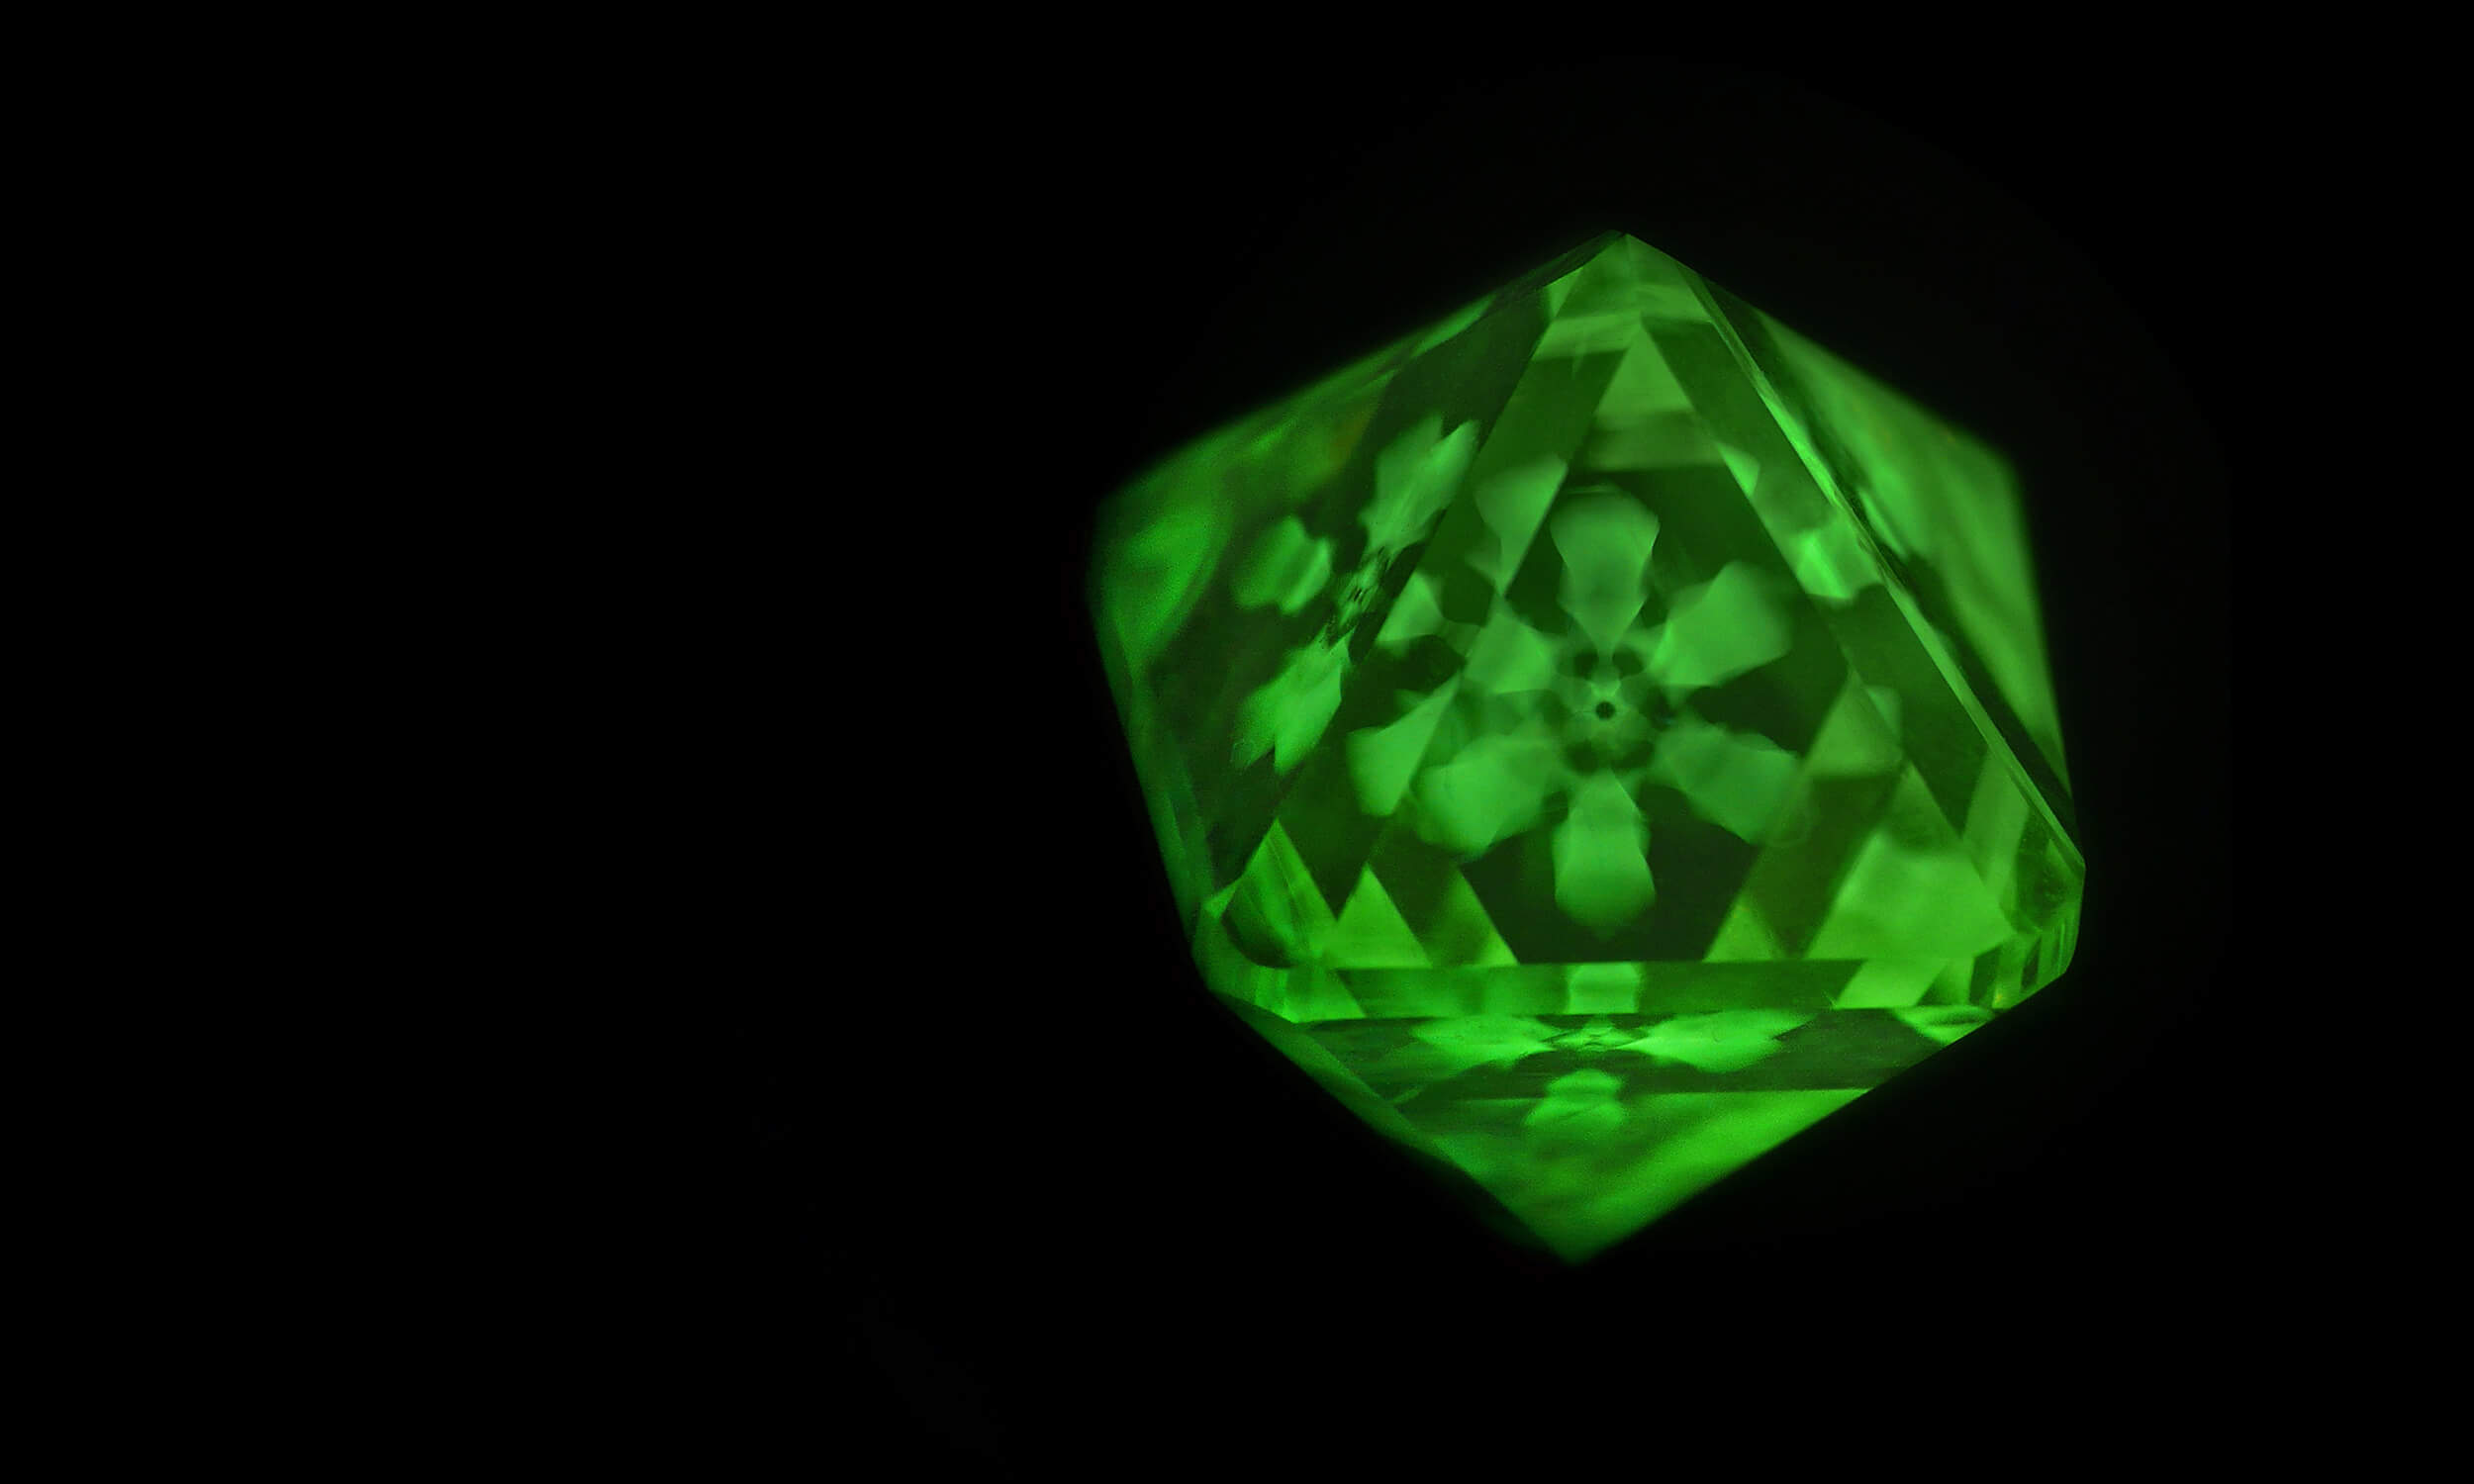 Asteriated luminescent structure in a rough diamond